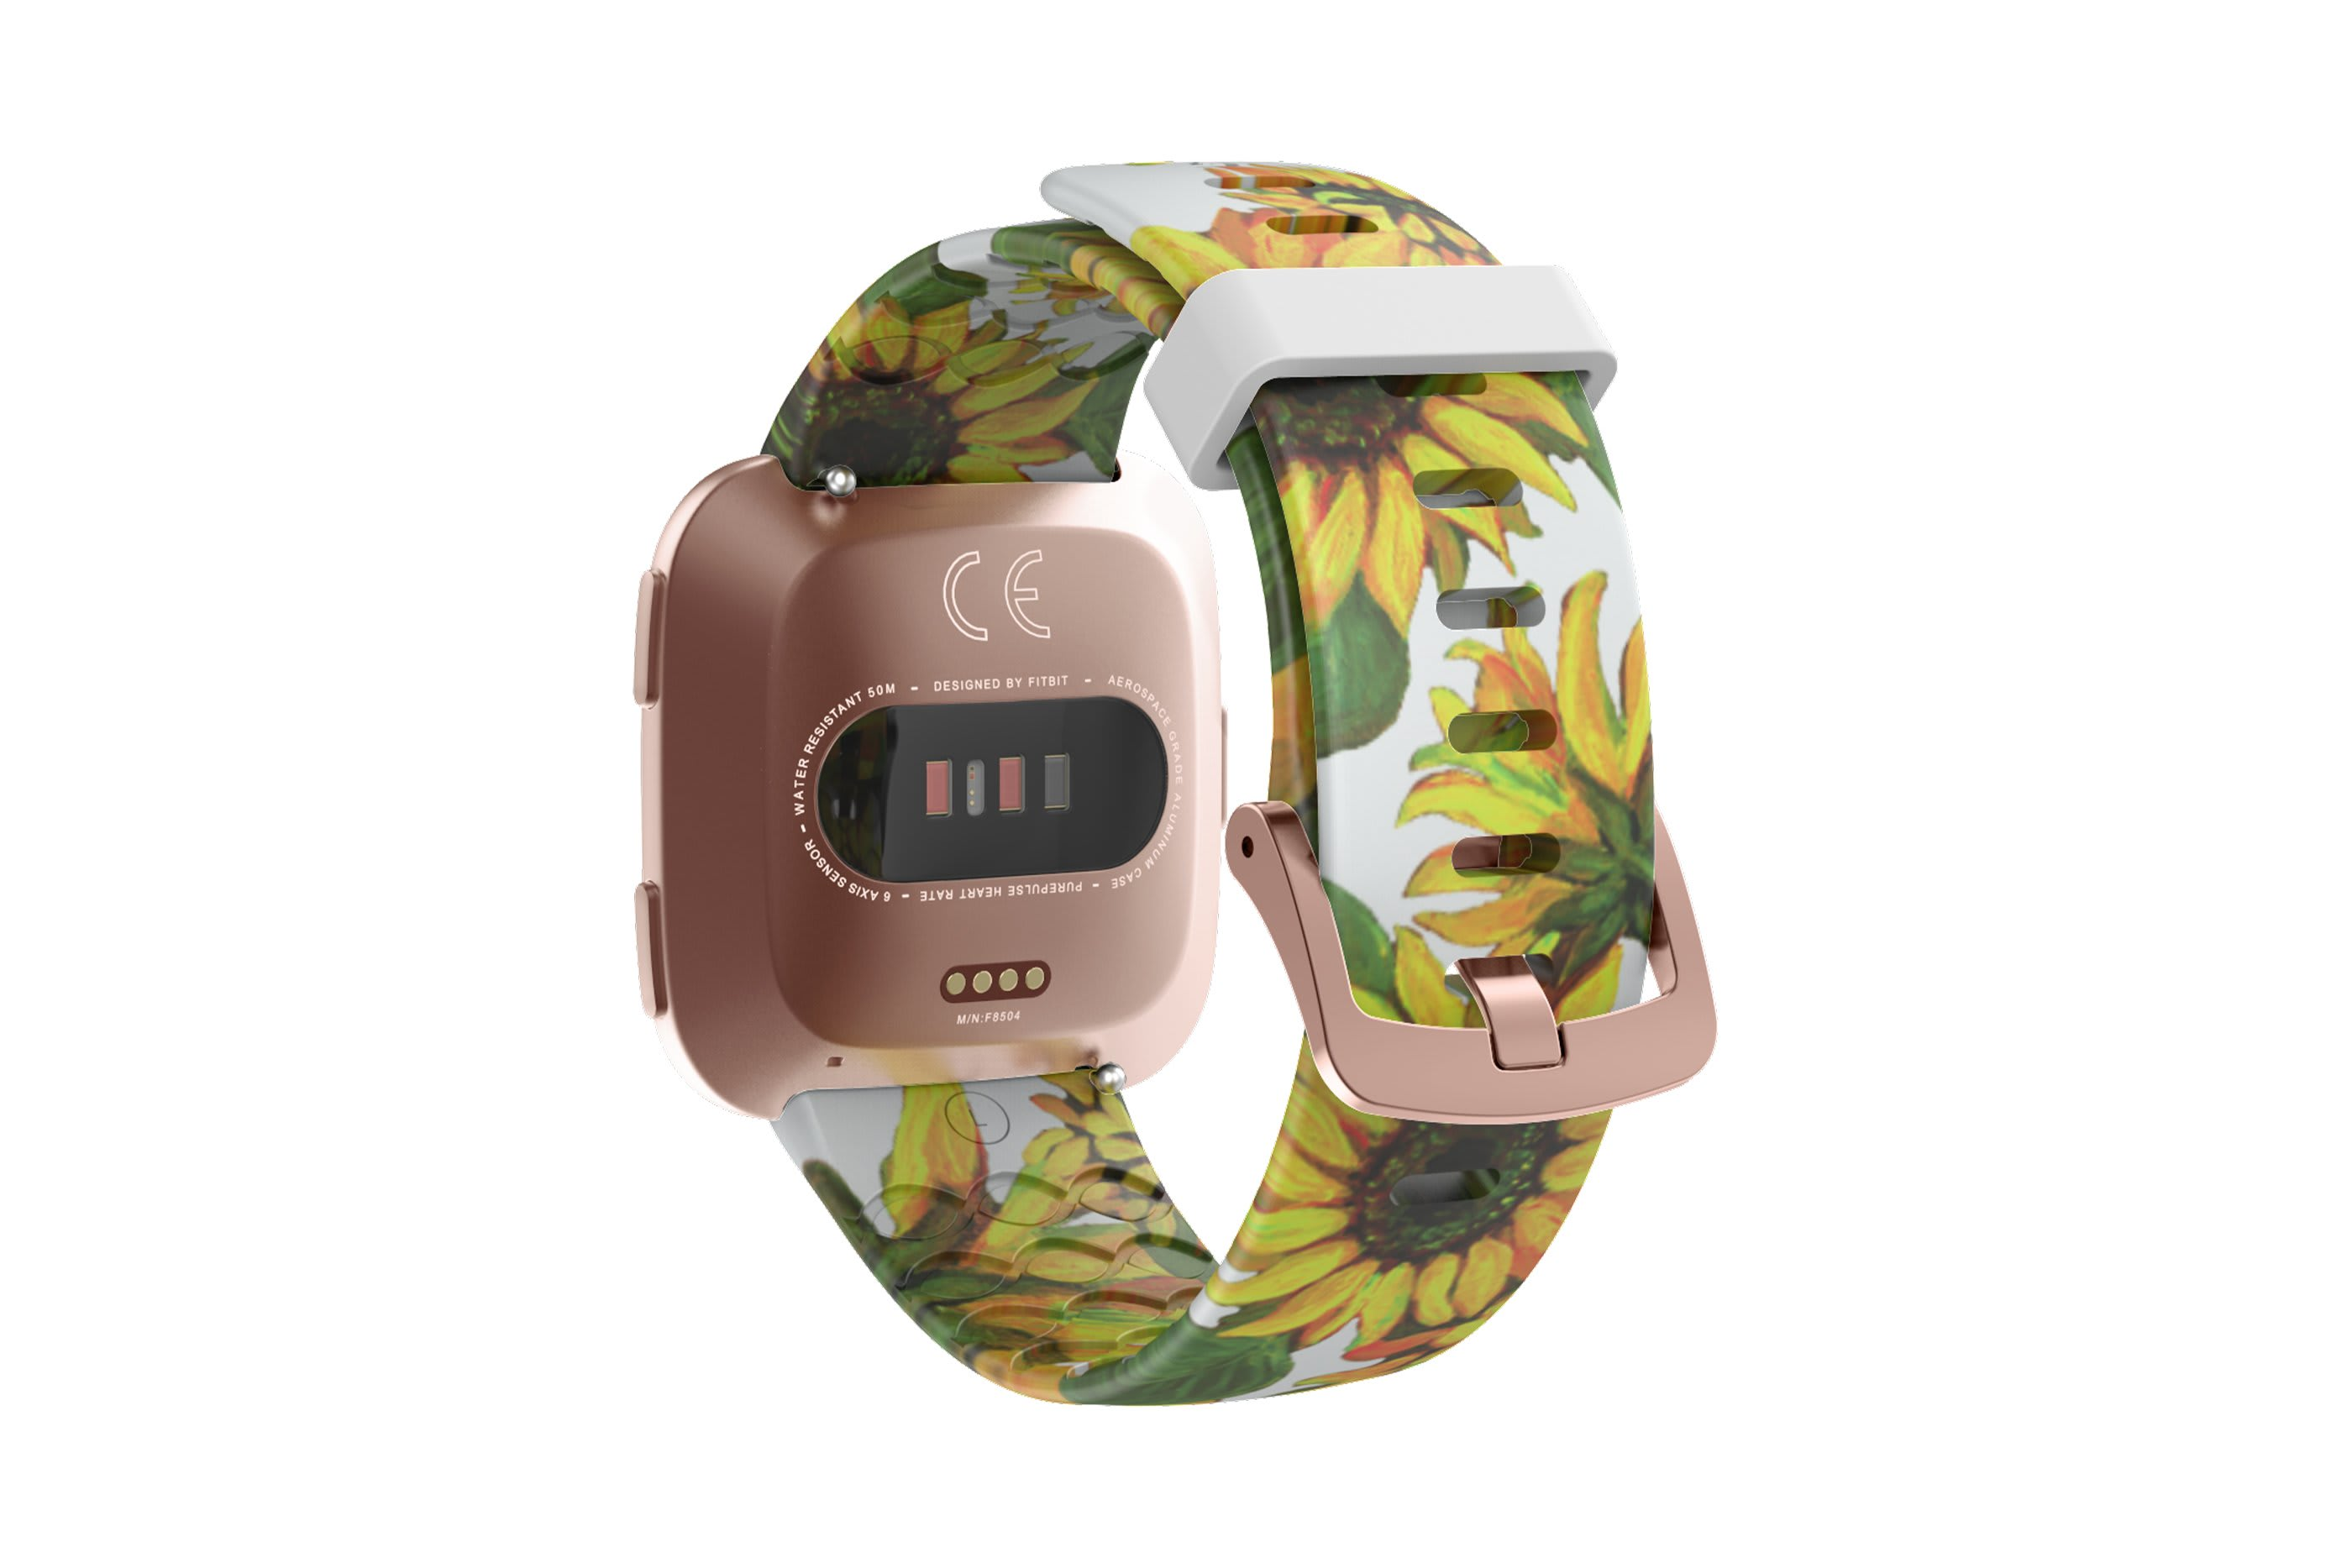 Sunflower fitbit versa watch band with rose gold hardware viewed from top down